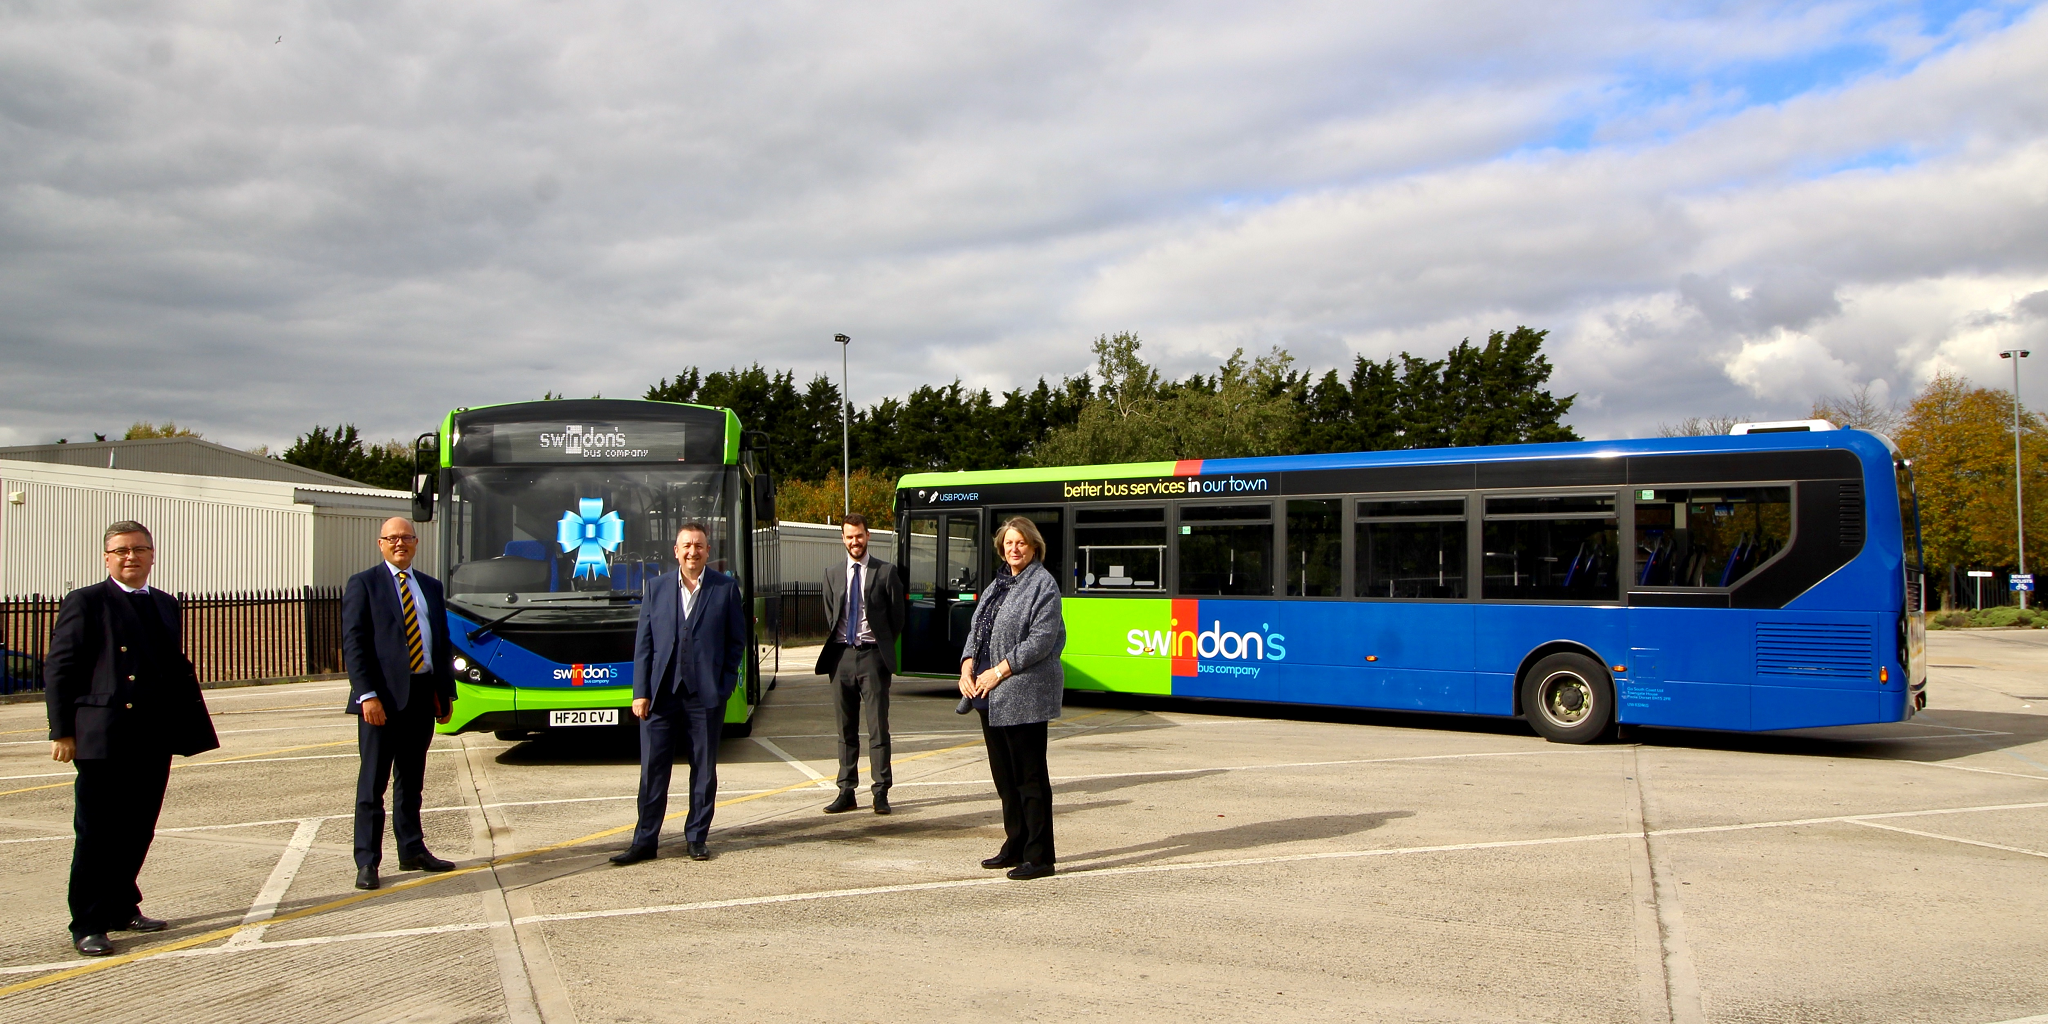 Swindon's Bus Company new buses